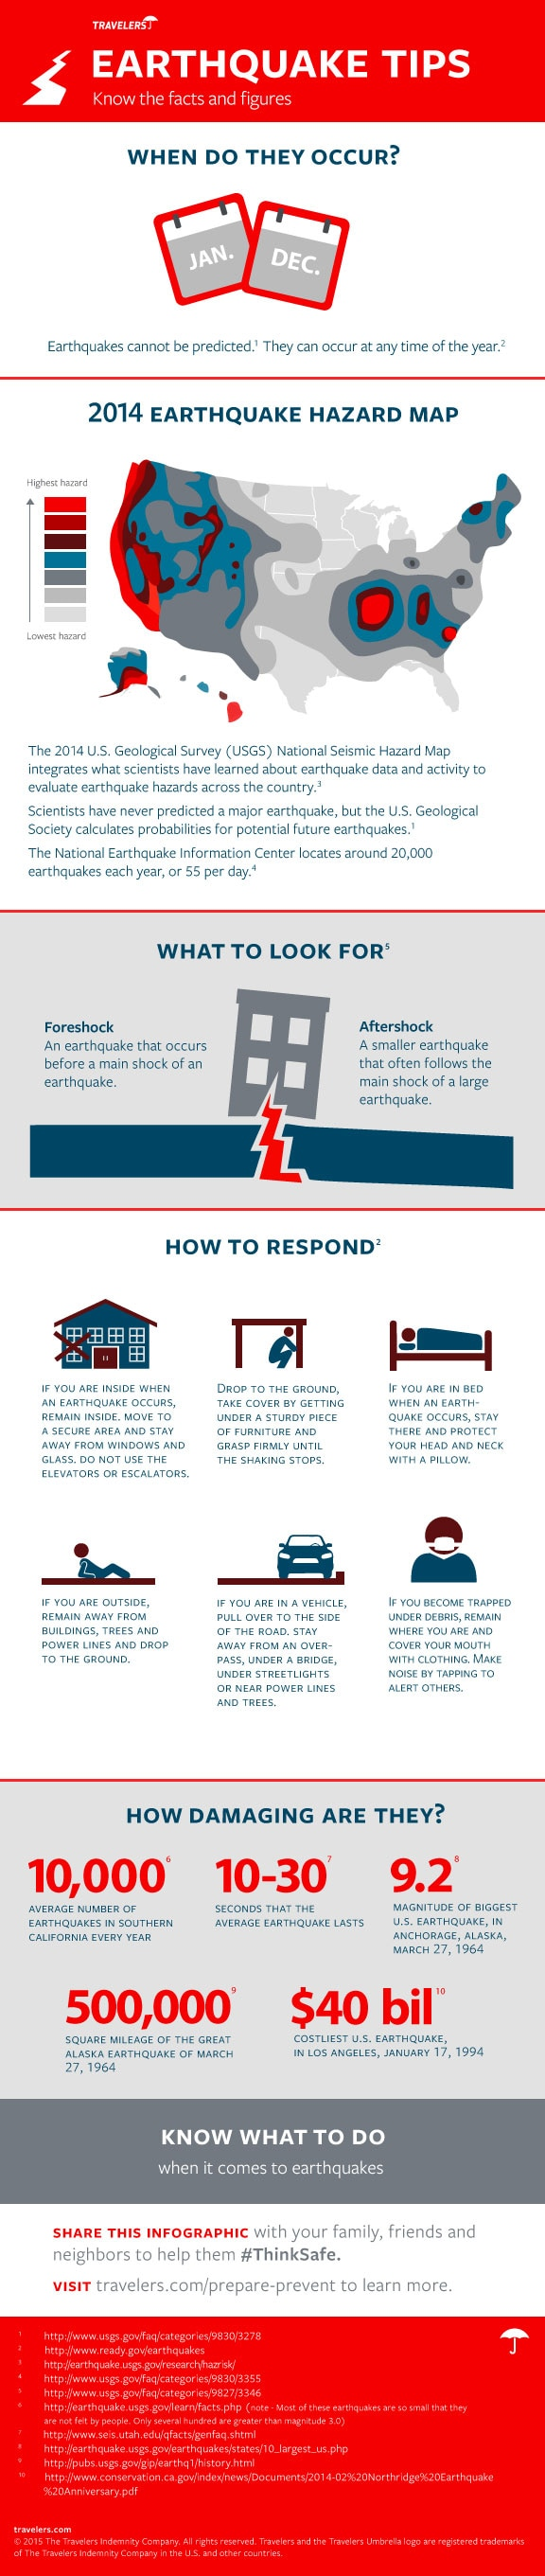 Earthquake facts and safety tips infographic